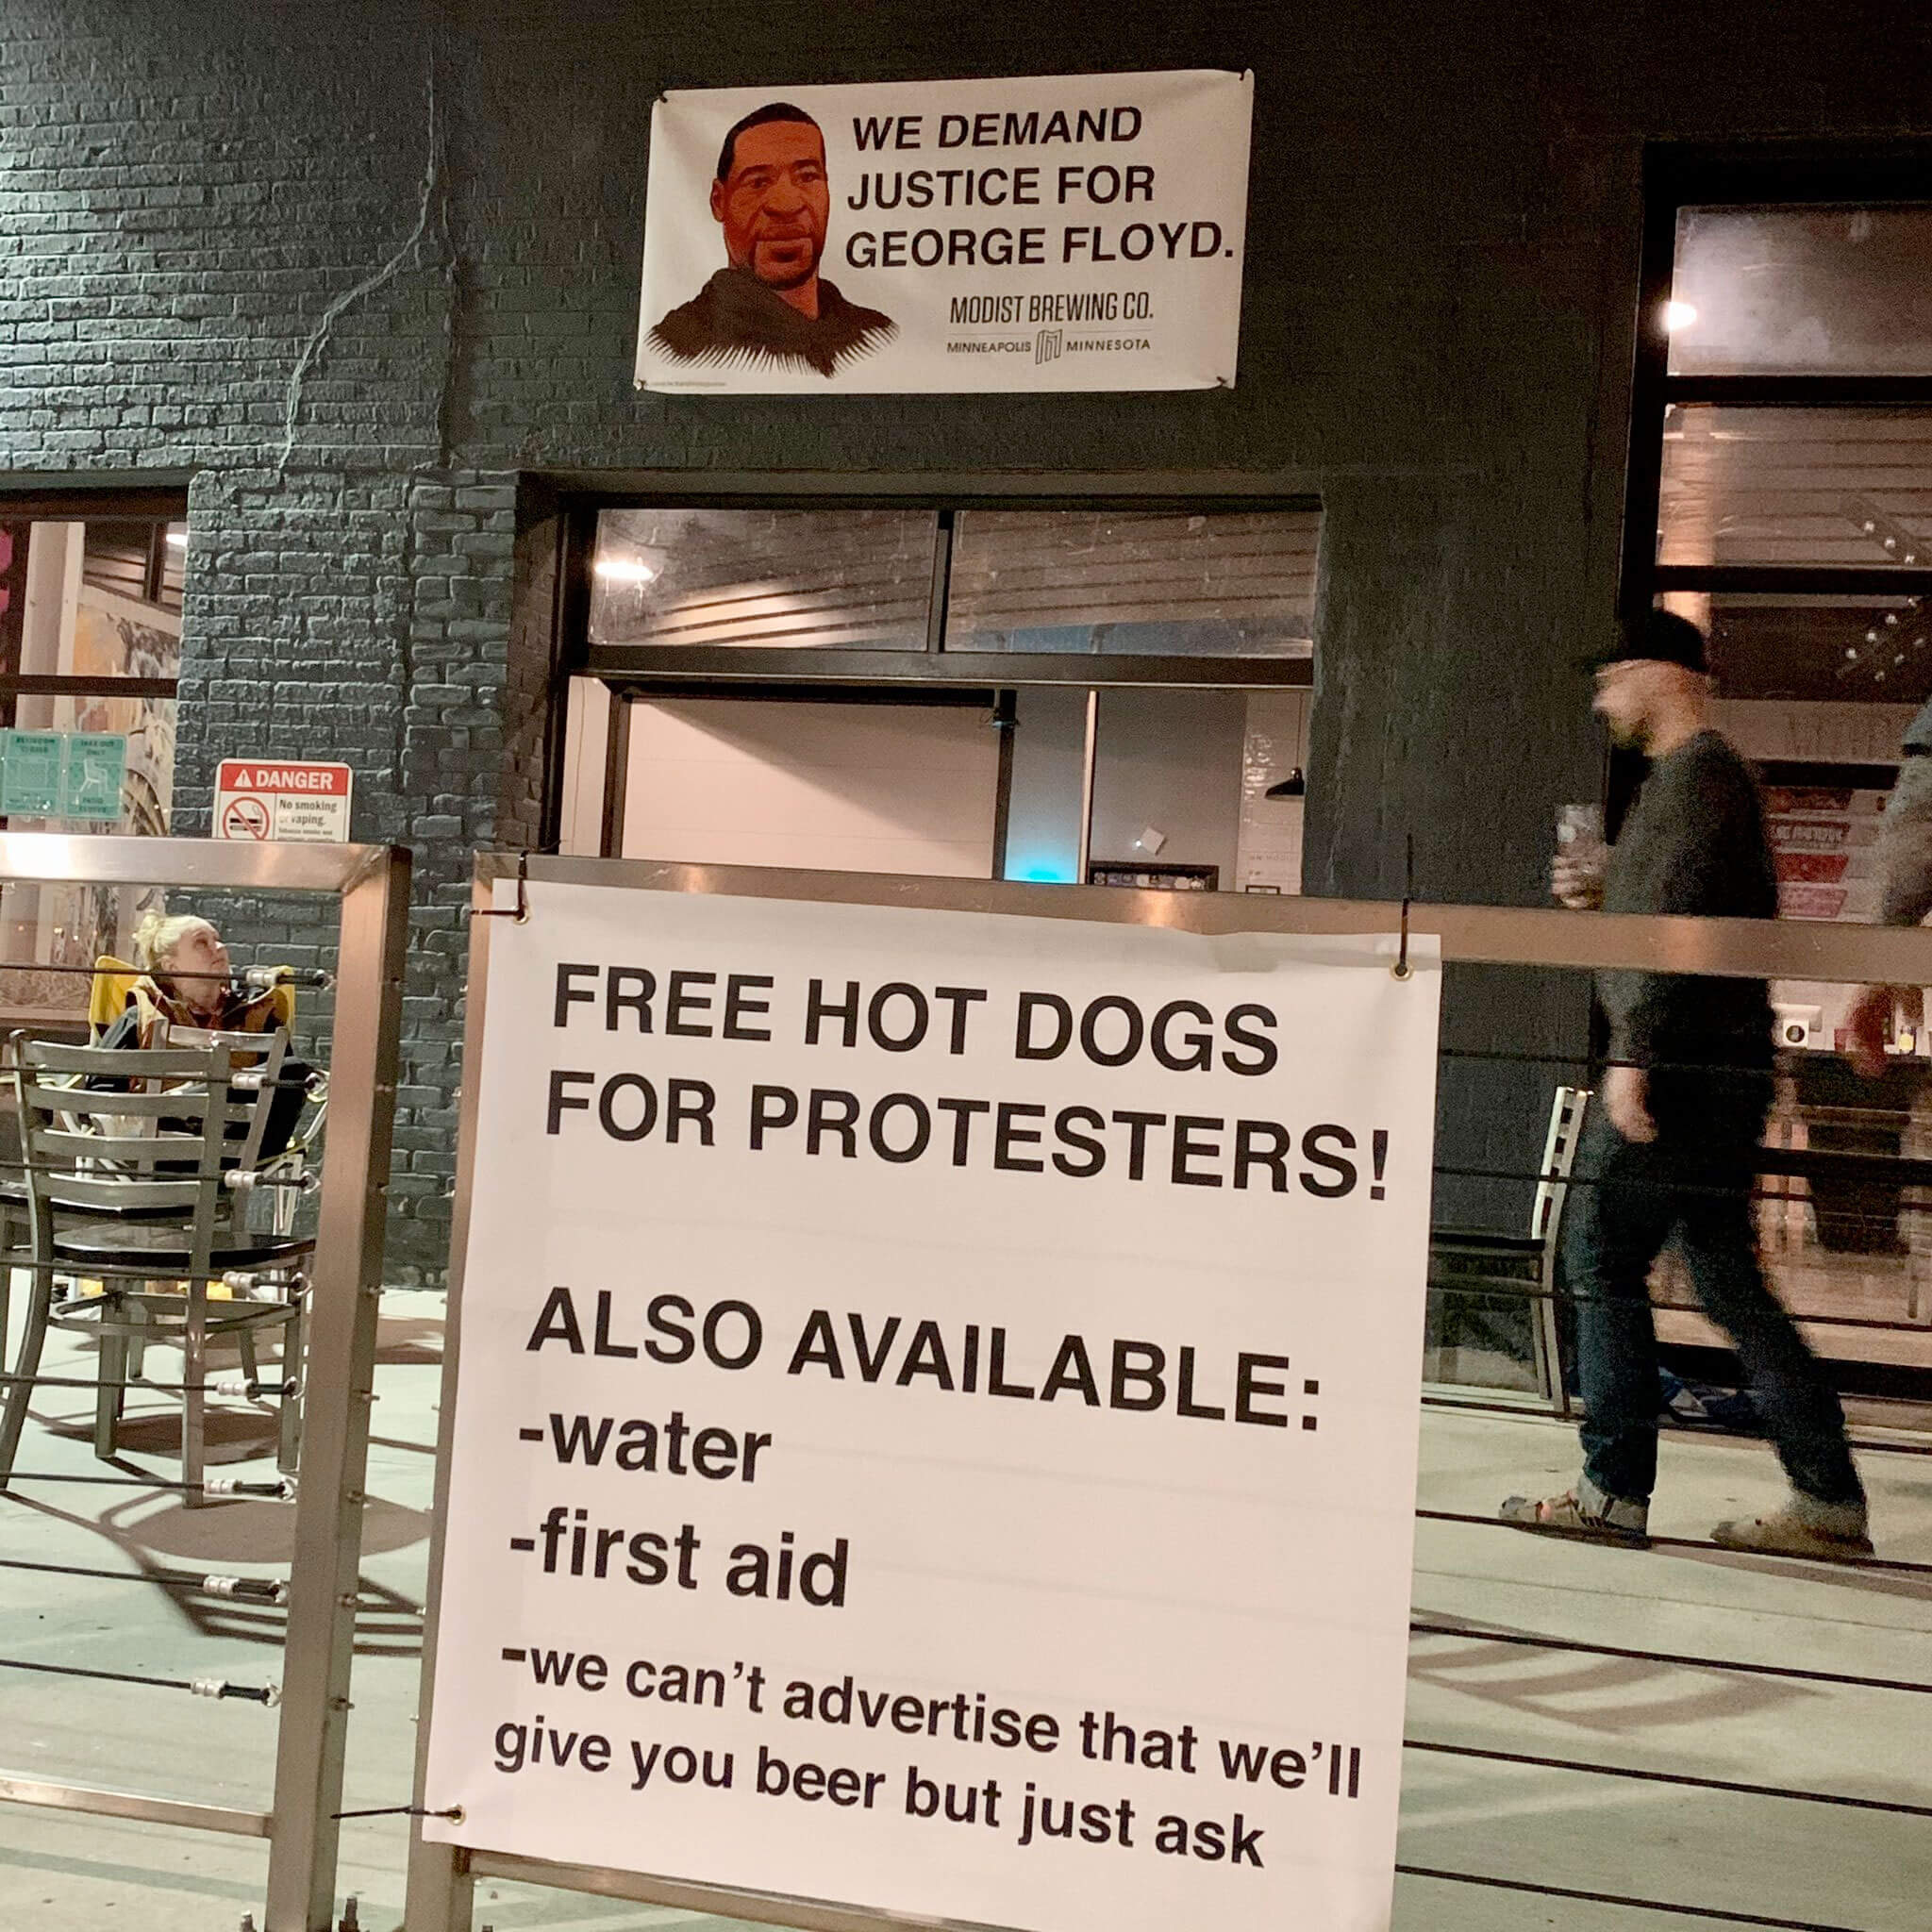 Modist Brewing Co. offers free hot dogs, water, first aid, and yes, beer, for protesters in Minneapolis, Minnesota